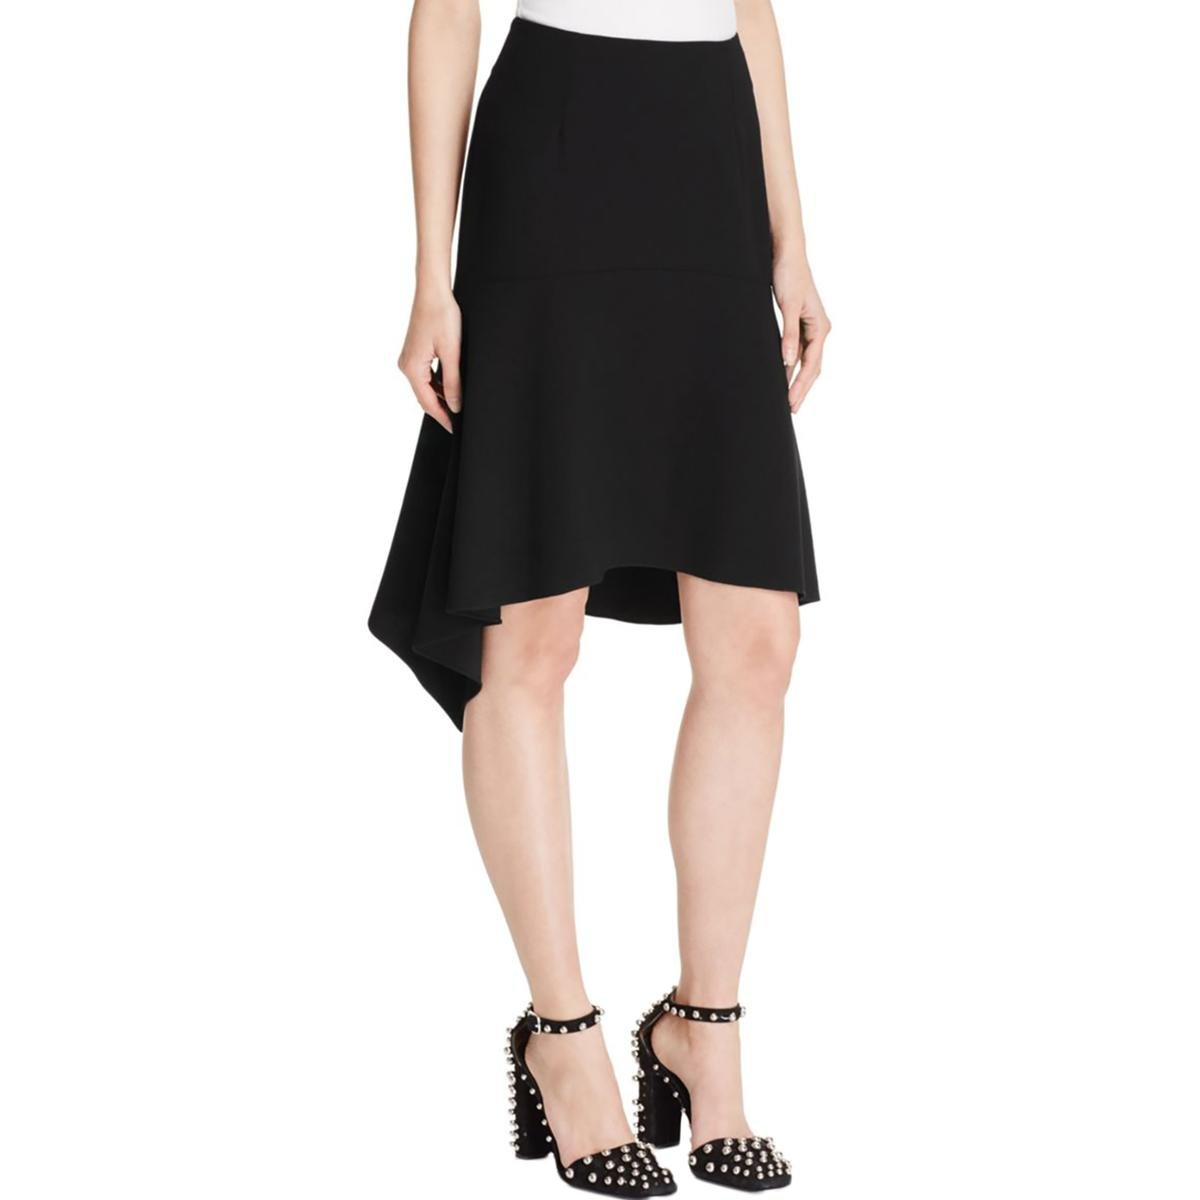 T by Alexander Wang Womens Crepe Drapey Peasant, Boho Skirt Black 8